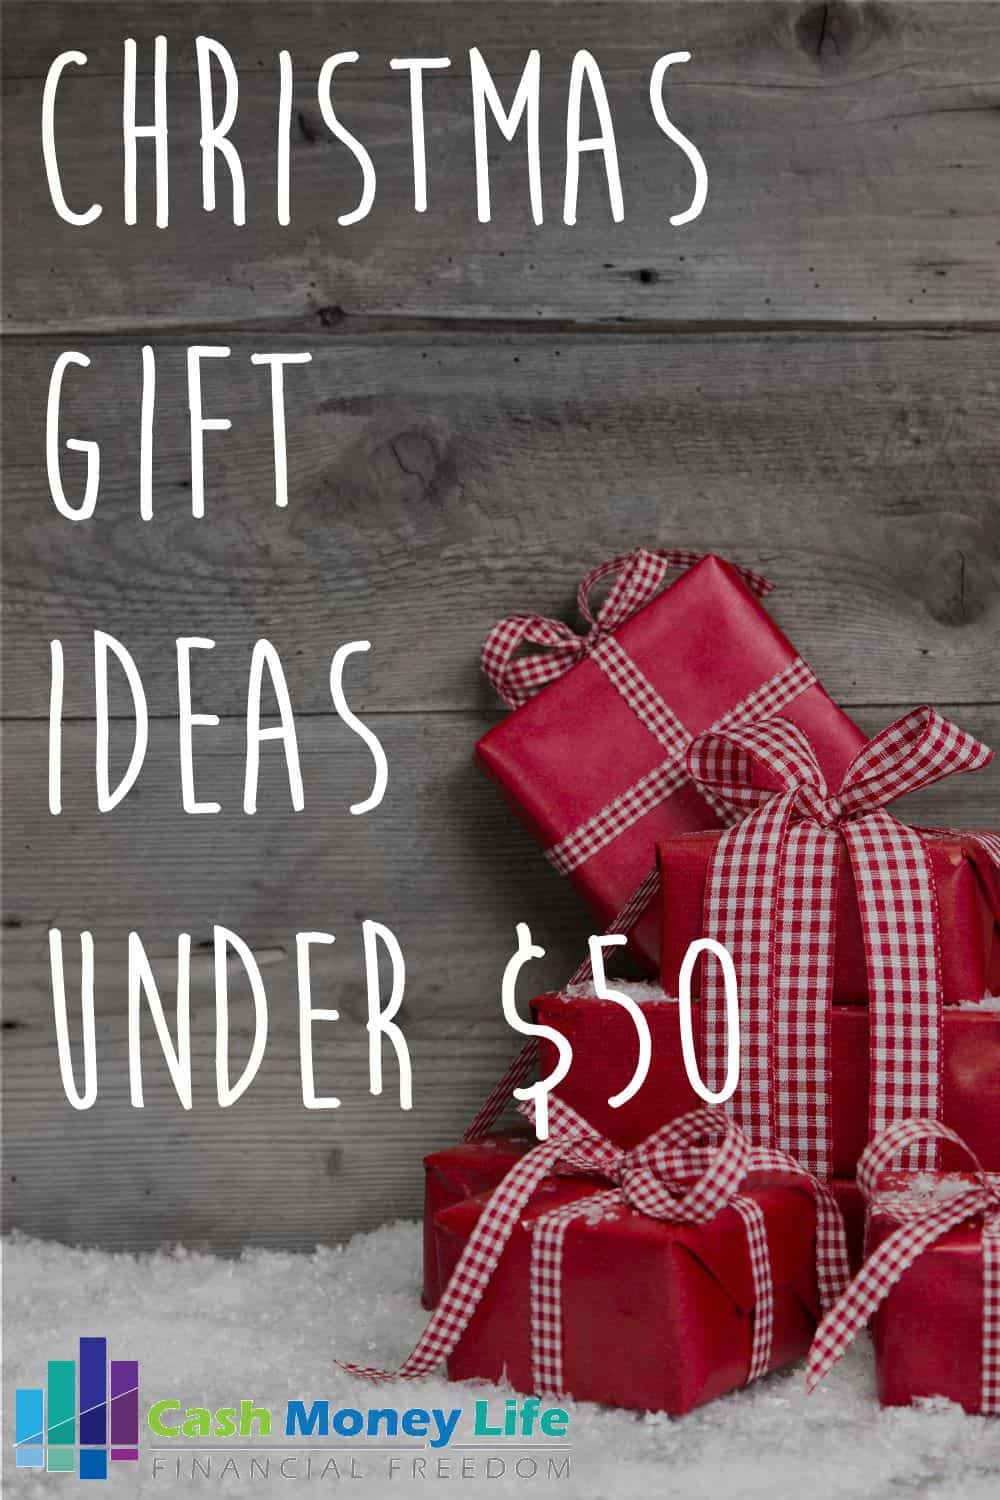 Best ideas about Gift Ideas Under 50 . Save or Pin 25 Christmas Gift Ideas Under $50 Now.